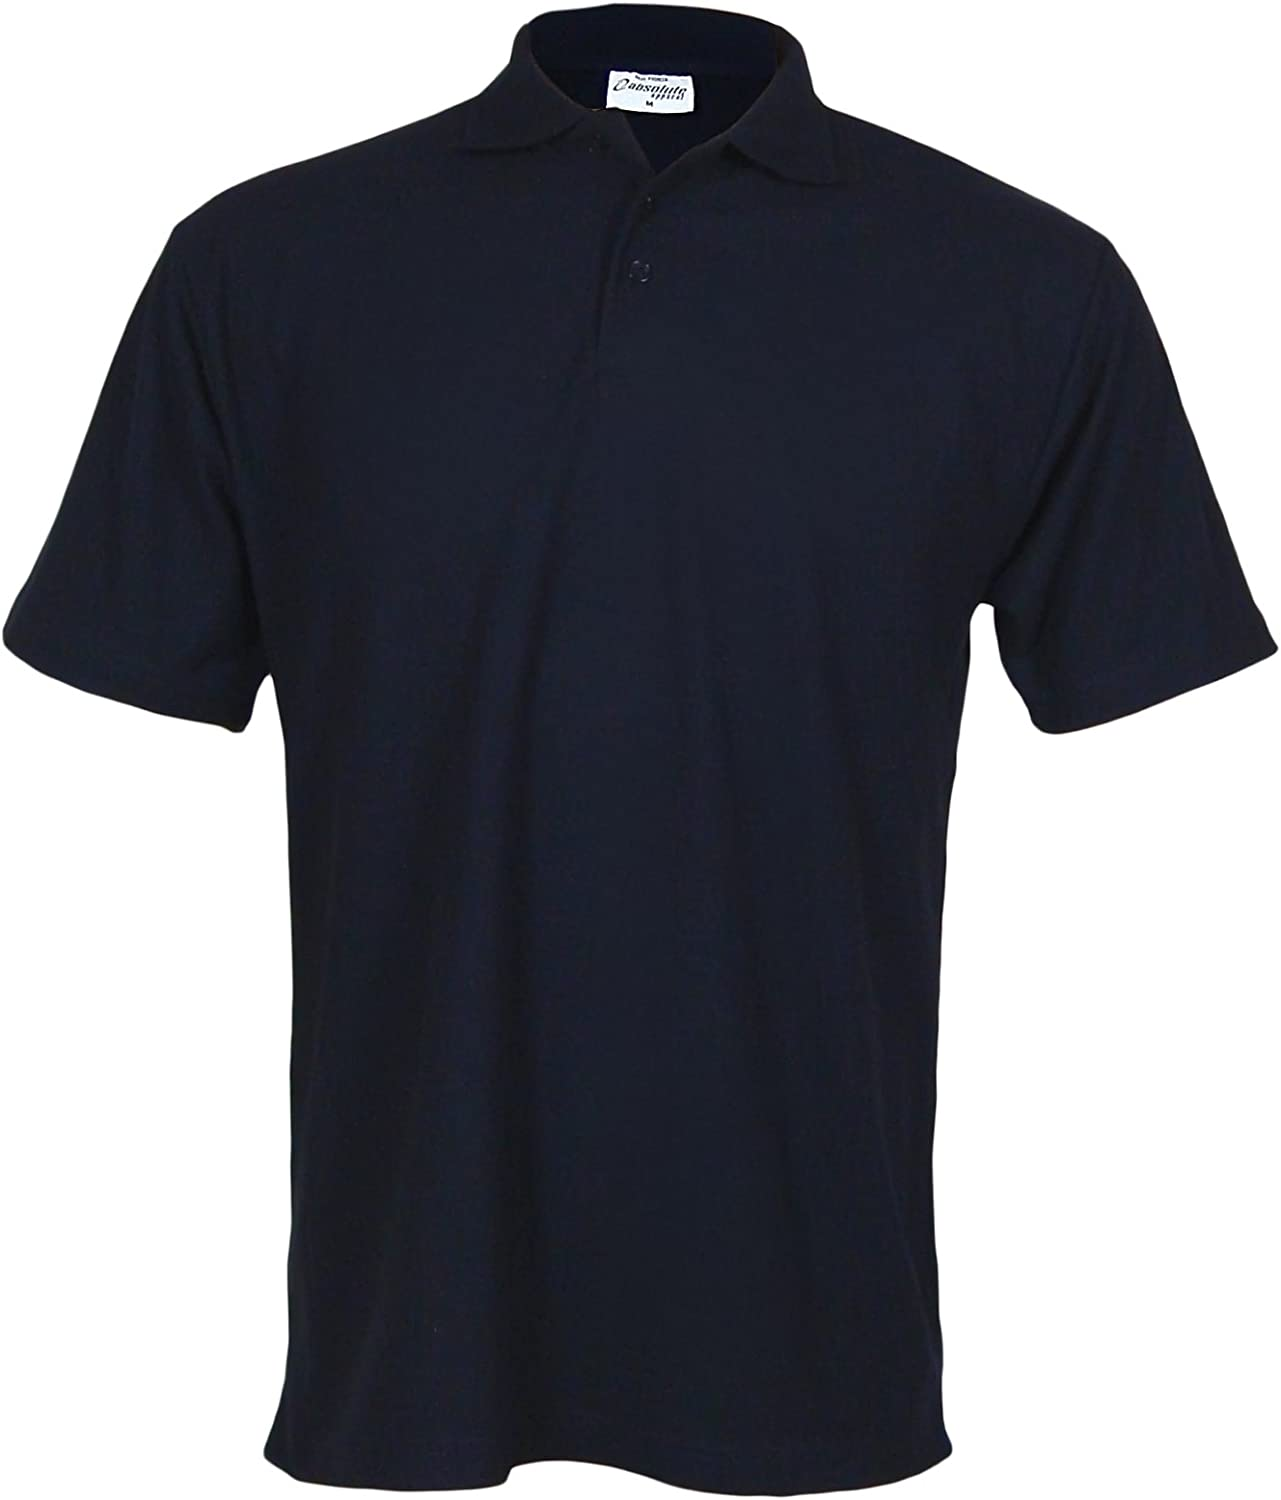 PRO RTX Men/'s Short Sleeve Casual Workwear Uniform Polo shirt Top Size XS to 7XL